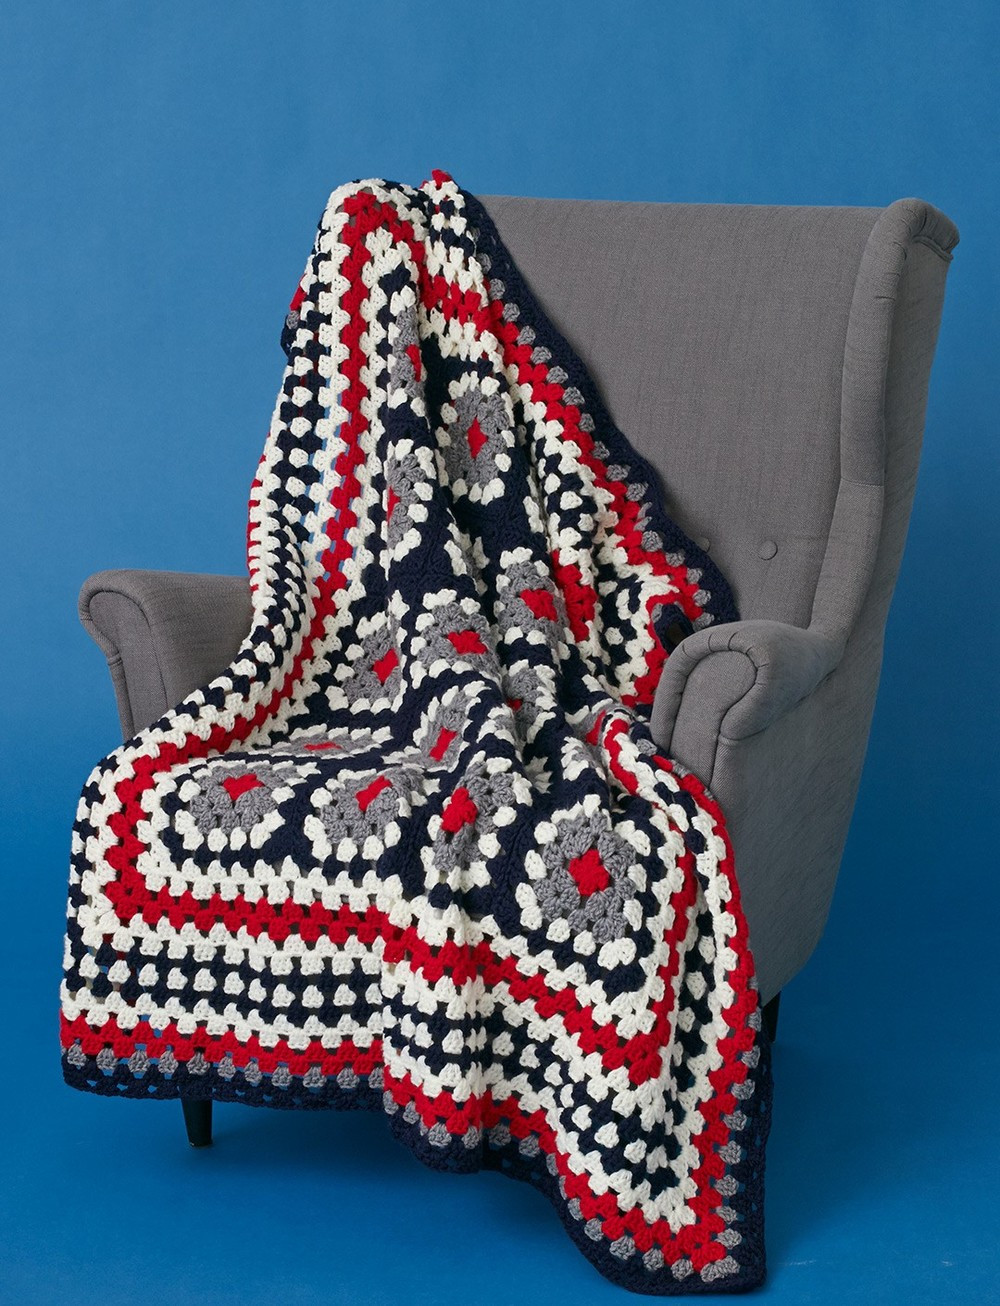 Afghan Square Crochet Patterns New Patriotic Crochet Granny Squares Throw Of Amazing 50 Pics Afghan Square Crochet Patterns